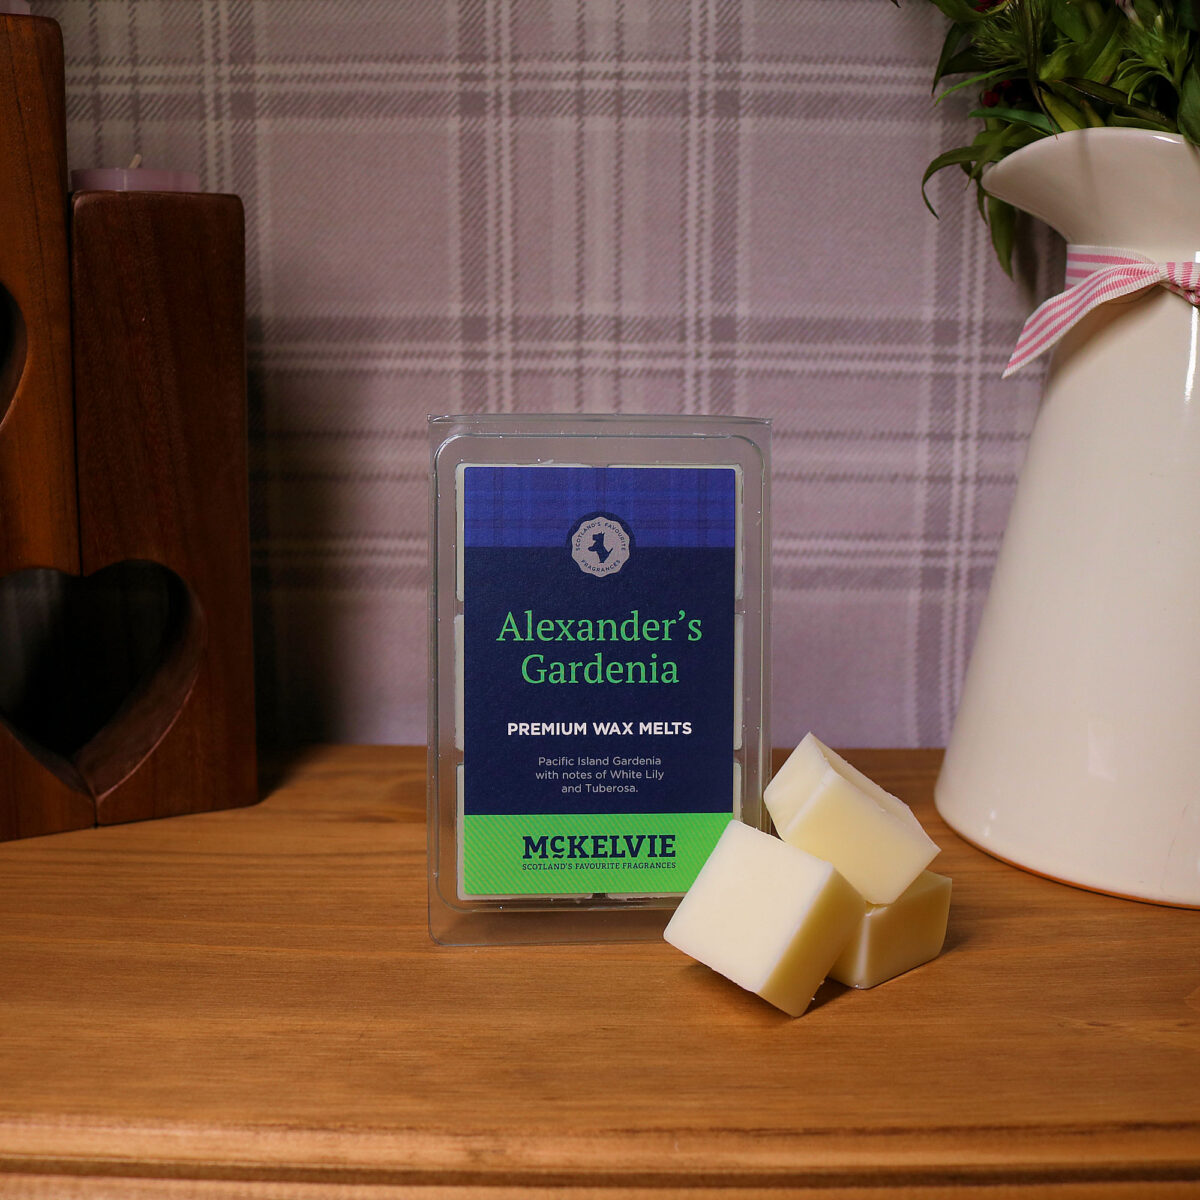 Alexander's Gardenia Wax Melts